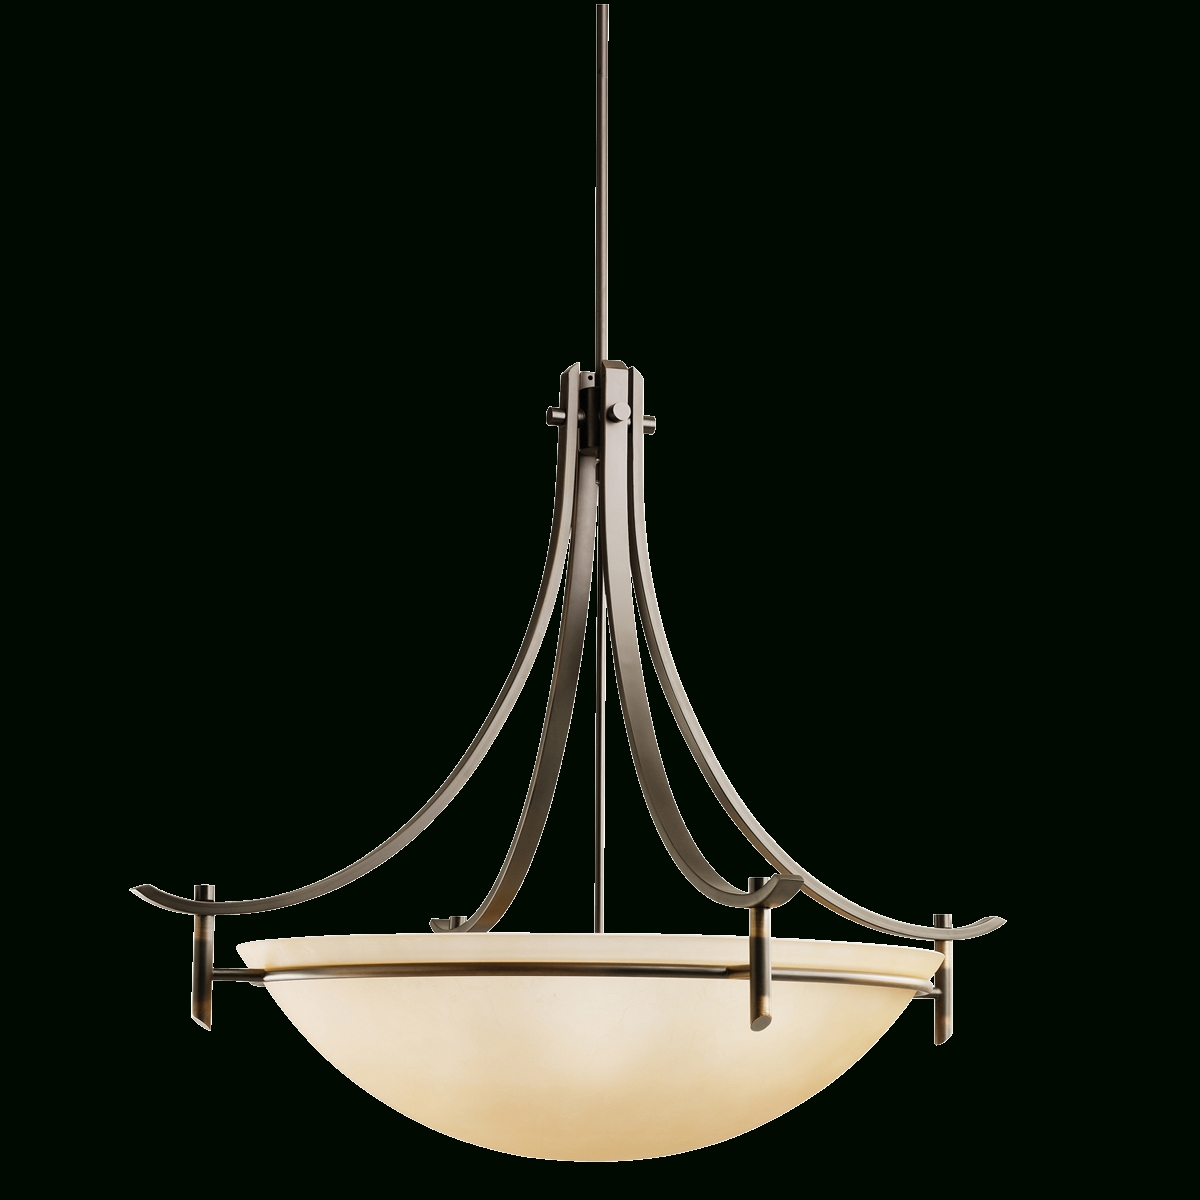 Olympia Collection 5 Light Inverted Pendant In Antique Pewter regarding Inverted Pendant Lighting (Image 10 of 15)